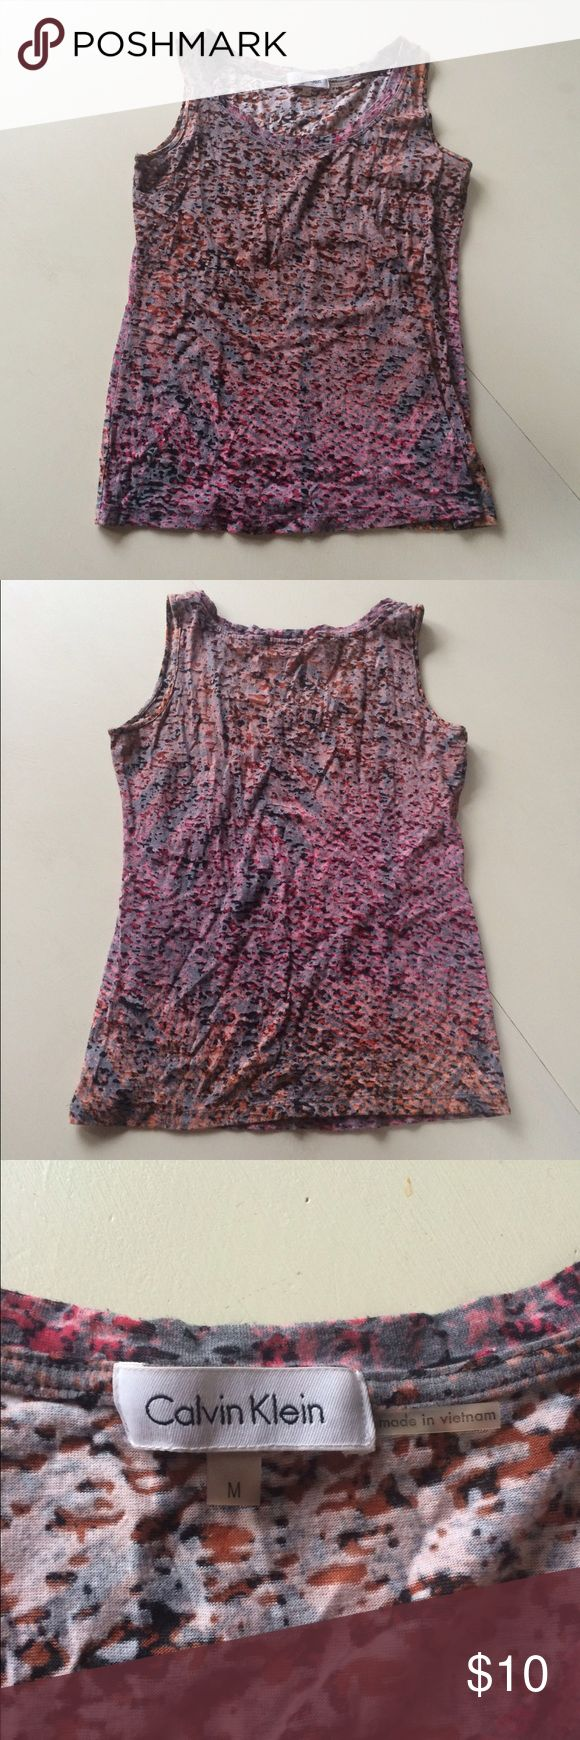 "Calvin Klein tank top shirt pink burn out M This is a lovely tank top by Calvin Klein. It is a gorgeous mix of pinks, oranges, and grays in a burn out fabric. Size M. Crewneck and no sleeves. Arm pit to arm pit: 15.5""-22"" Waist: 14""-18"" Arm pit to hem: 16"" Calvin Klein Tops Tank Tops"